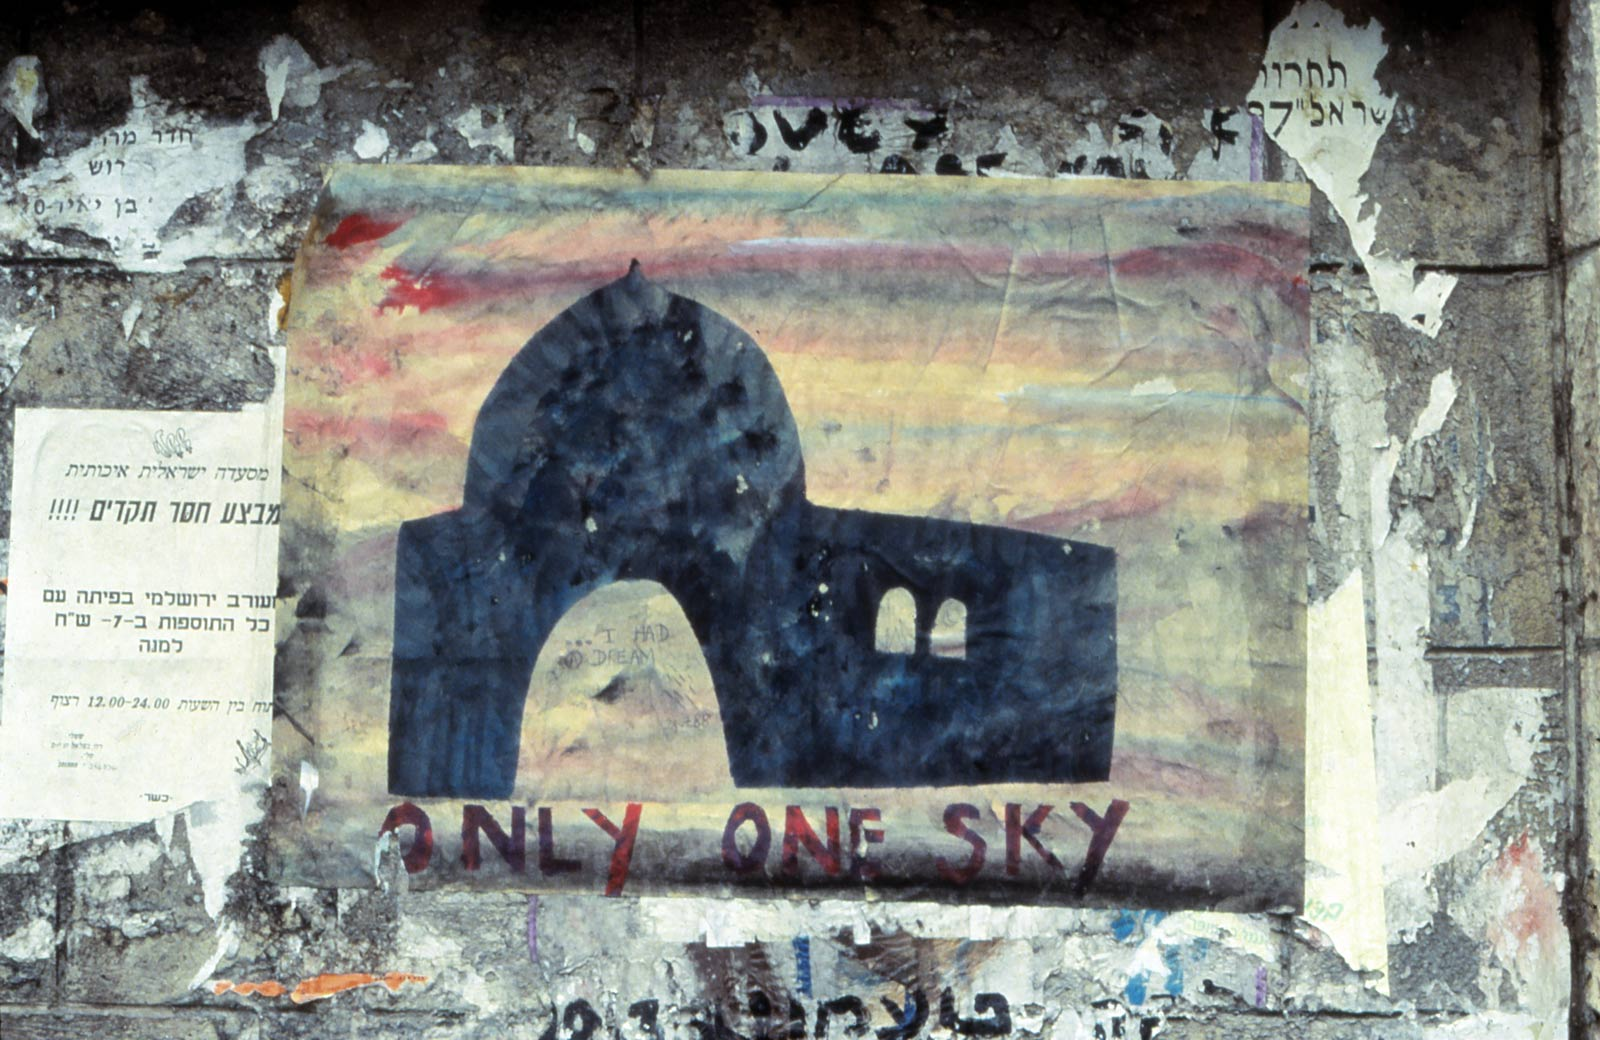 Just one Sky